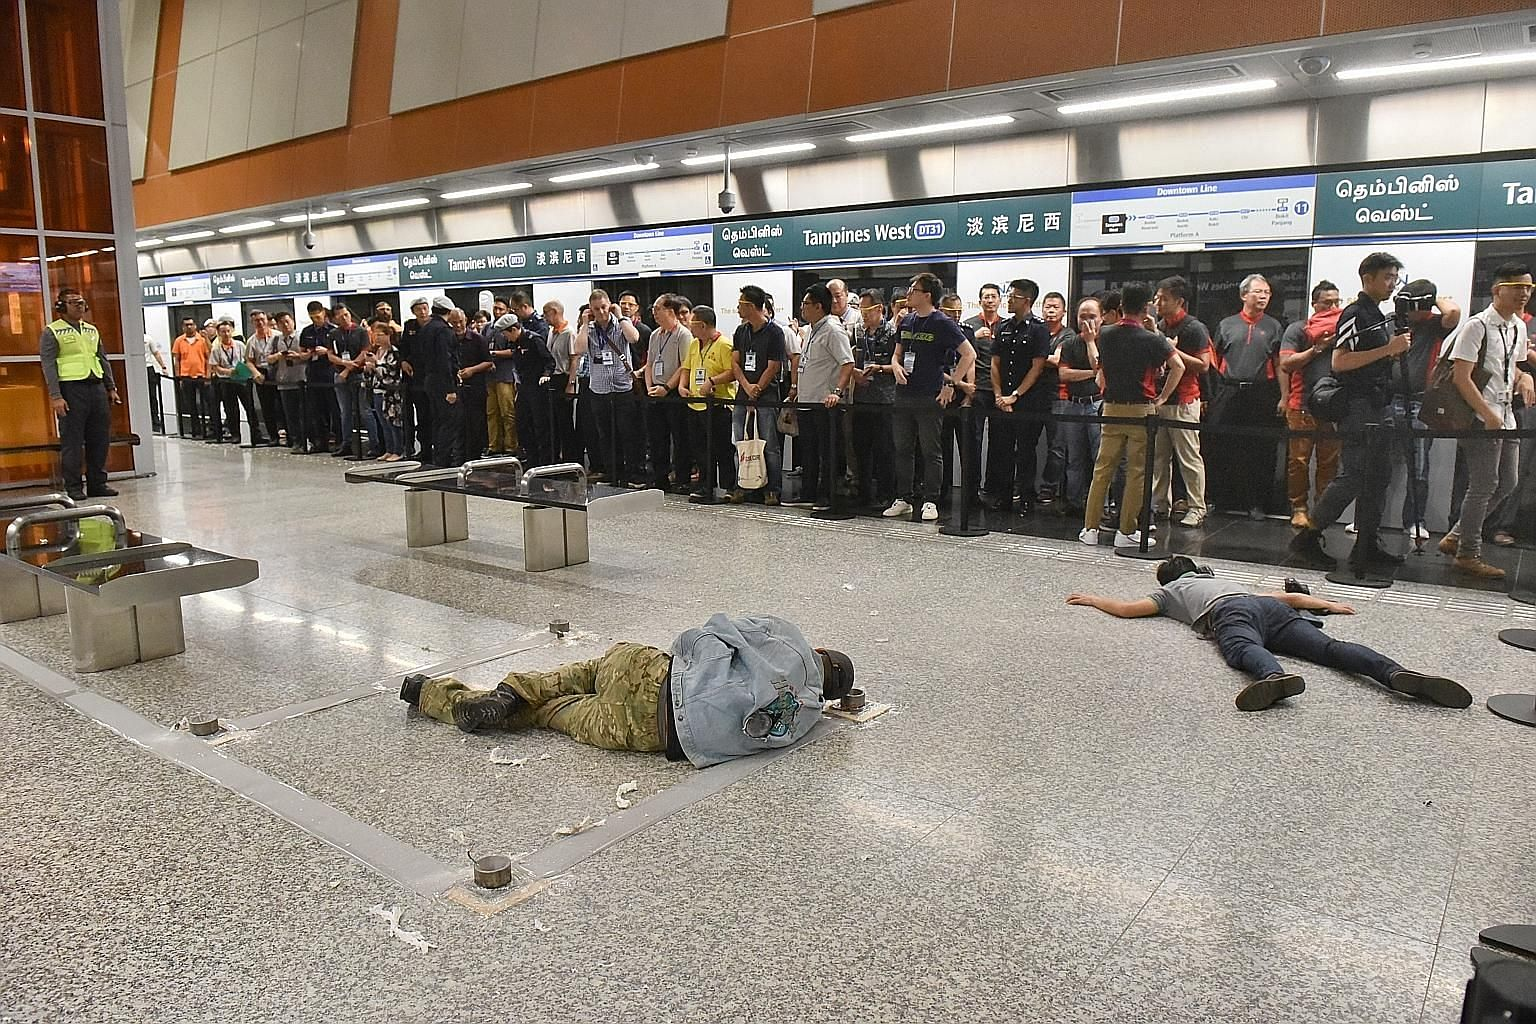 A simulated terrorist attack at Tampines West MRT station last month involved more than 120 officers from various agencies and public transport workers. Senior Minister of State for Transport Janil Puthucheary said in Parliament yesterday that LTA an